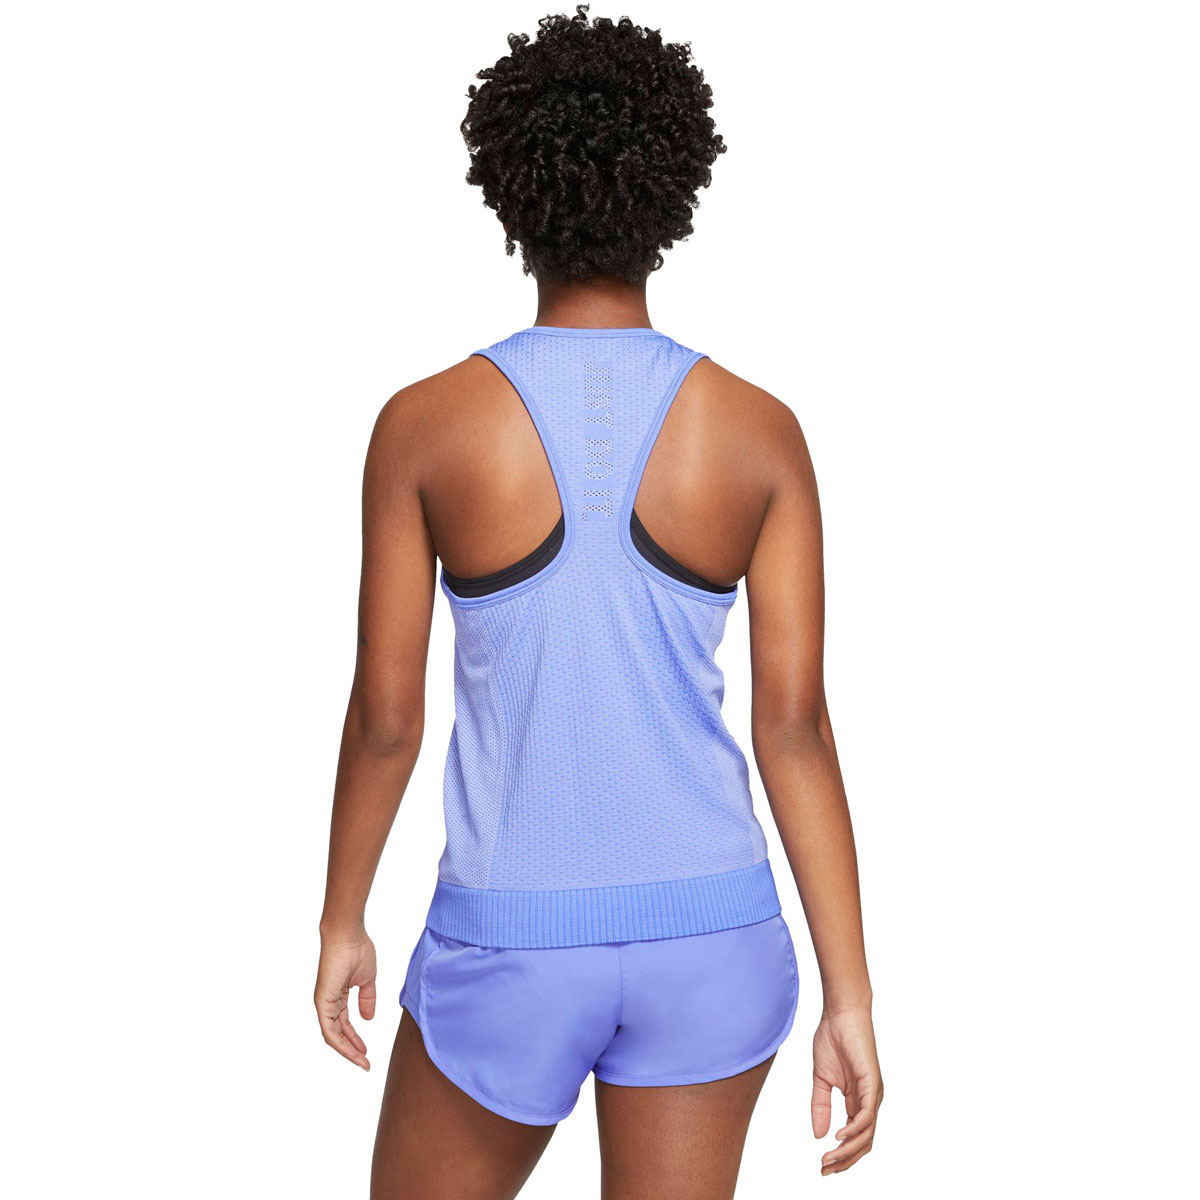 Women's Nike Infinite Running Tank - Color: Sapphire/Light Thistle/Reflective Silver - Size: XS, Sapphire/Light Thistle/Reflective Silver, large, image 2